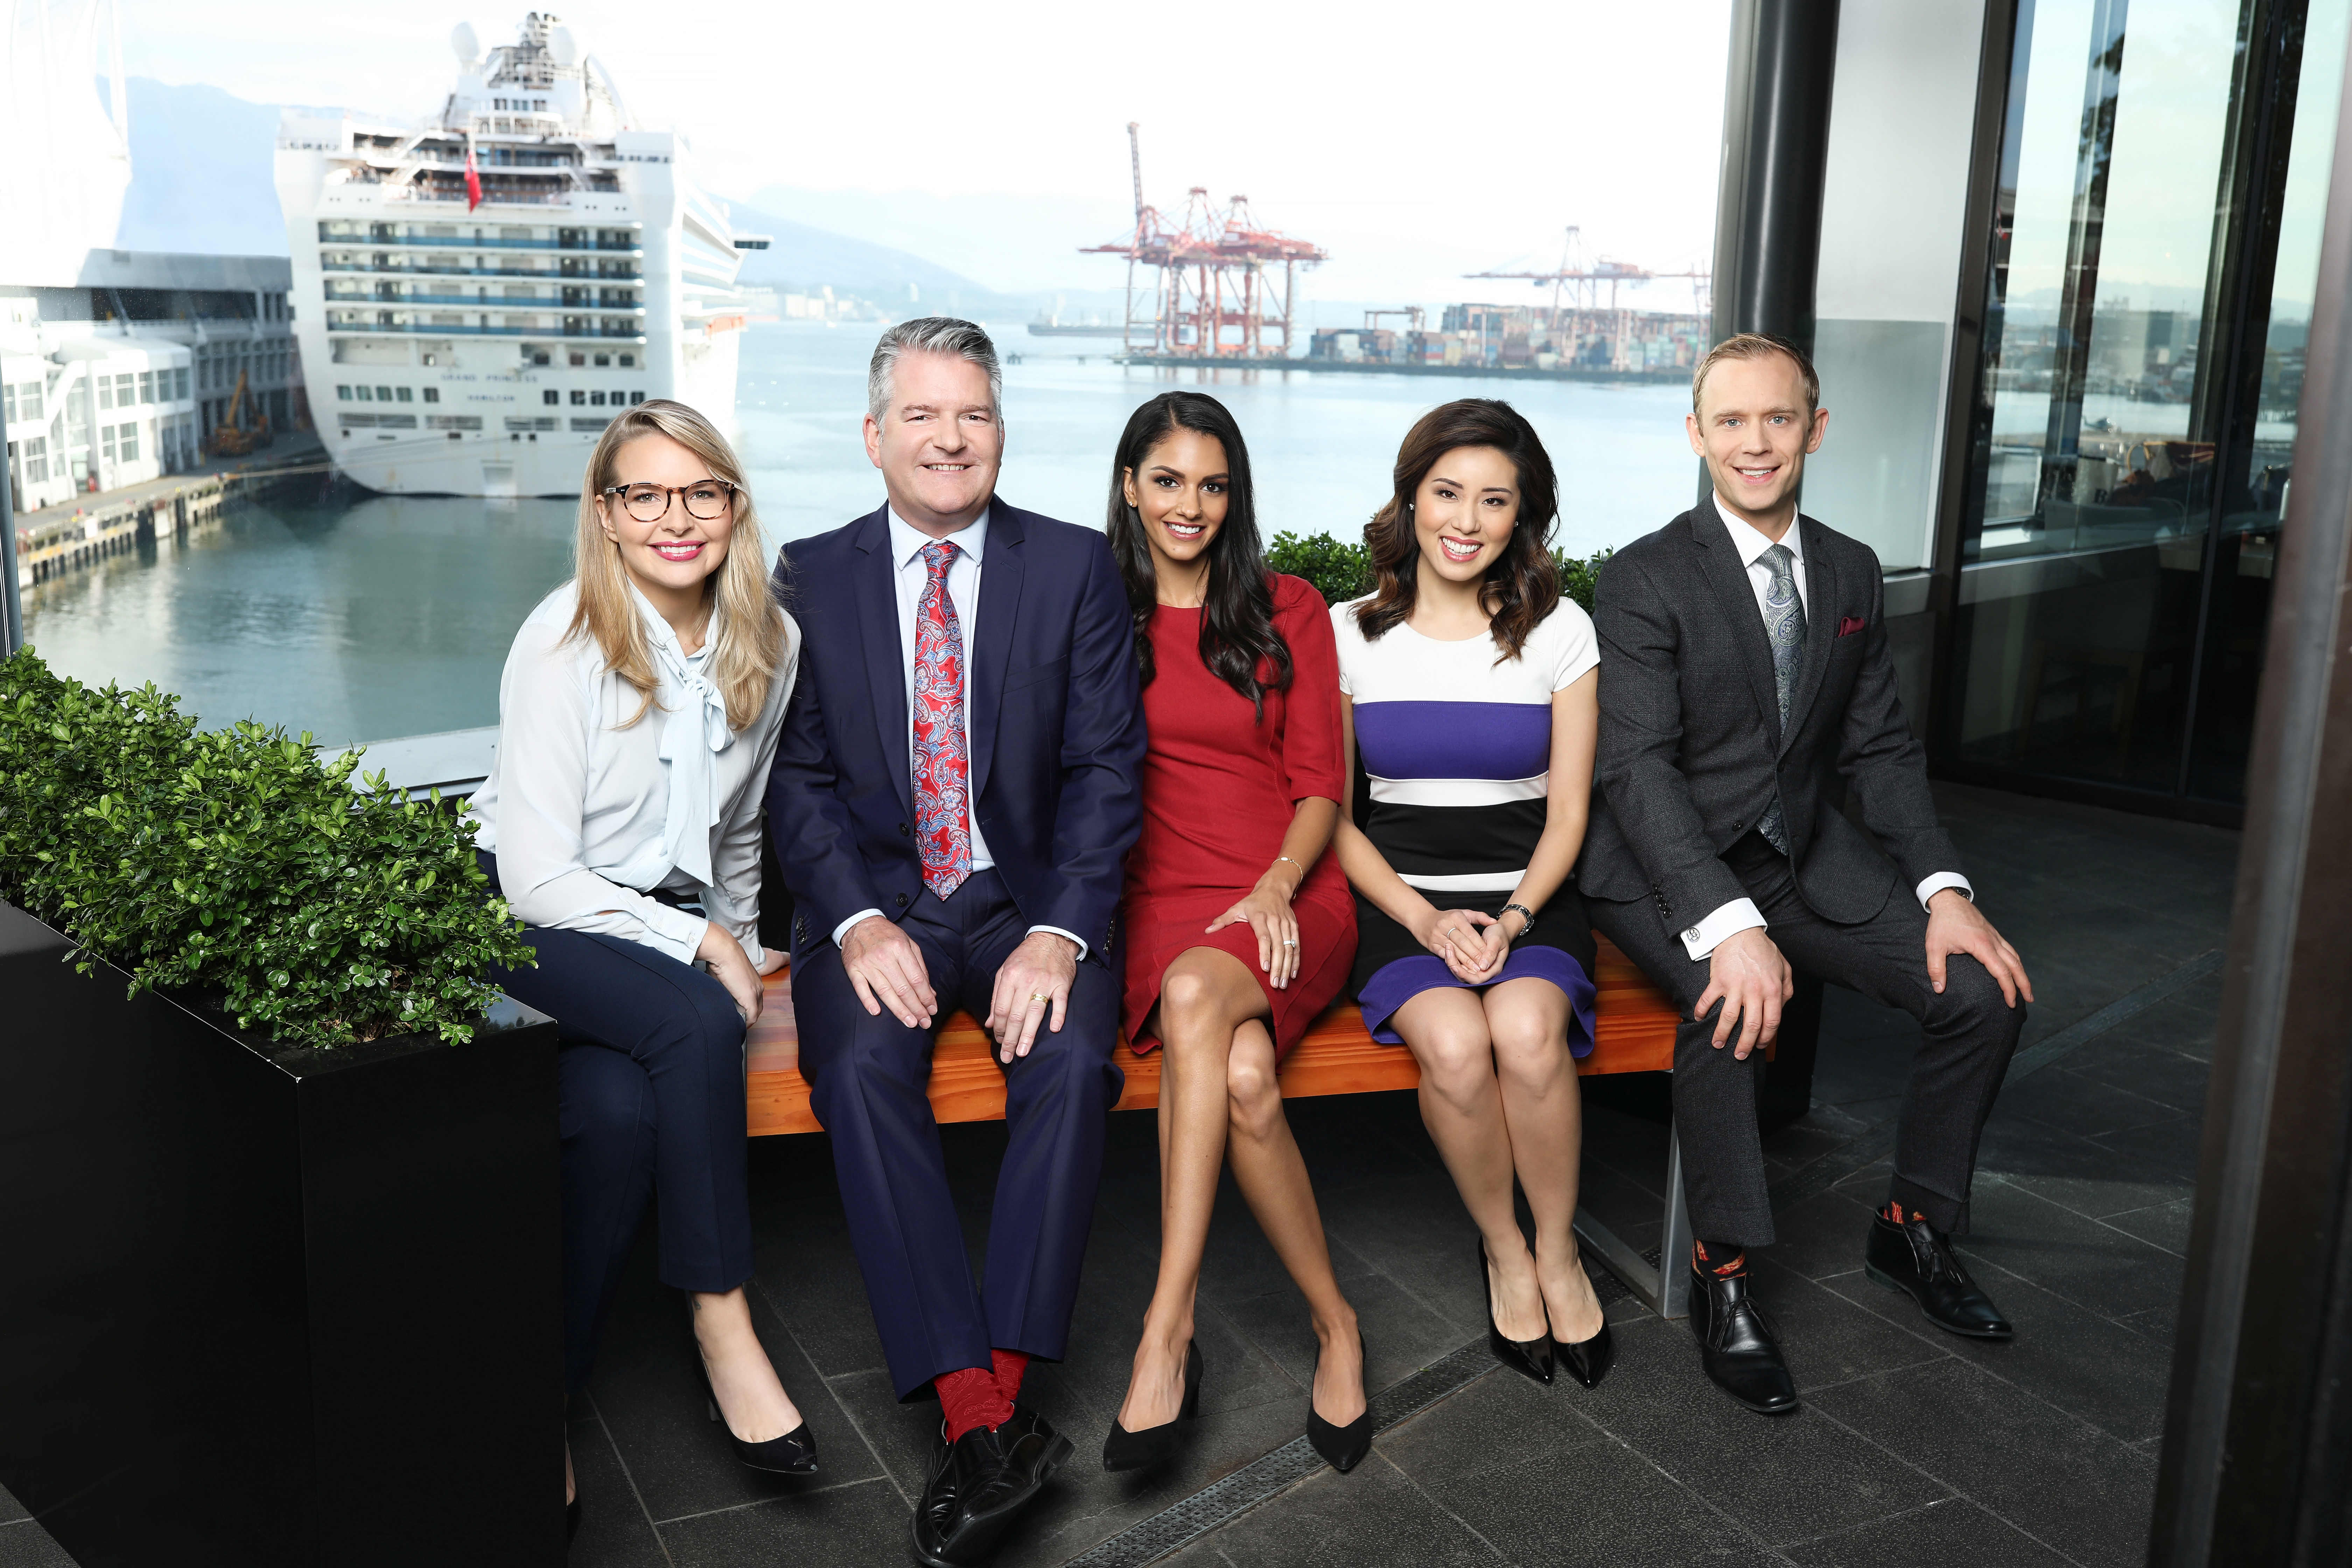 MEET THE FACES OF CBC VANCOUVER NEWS